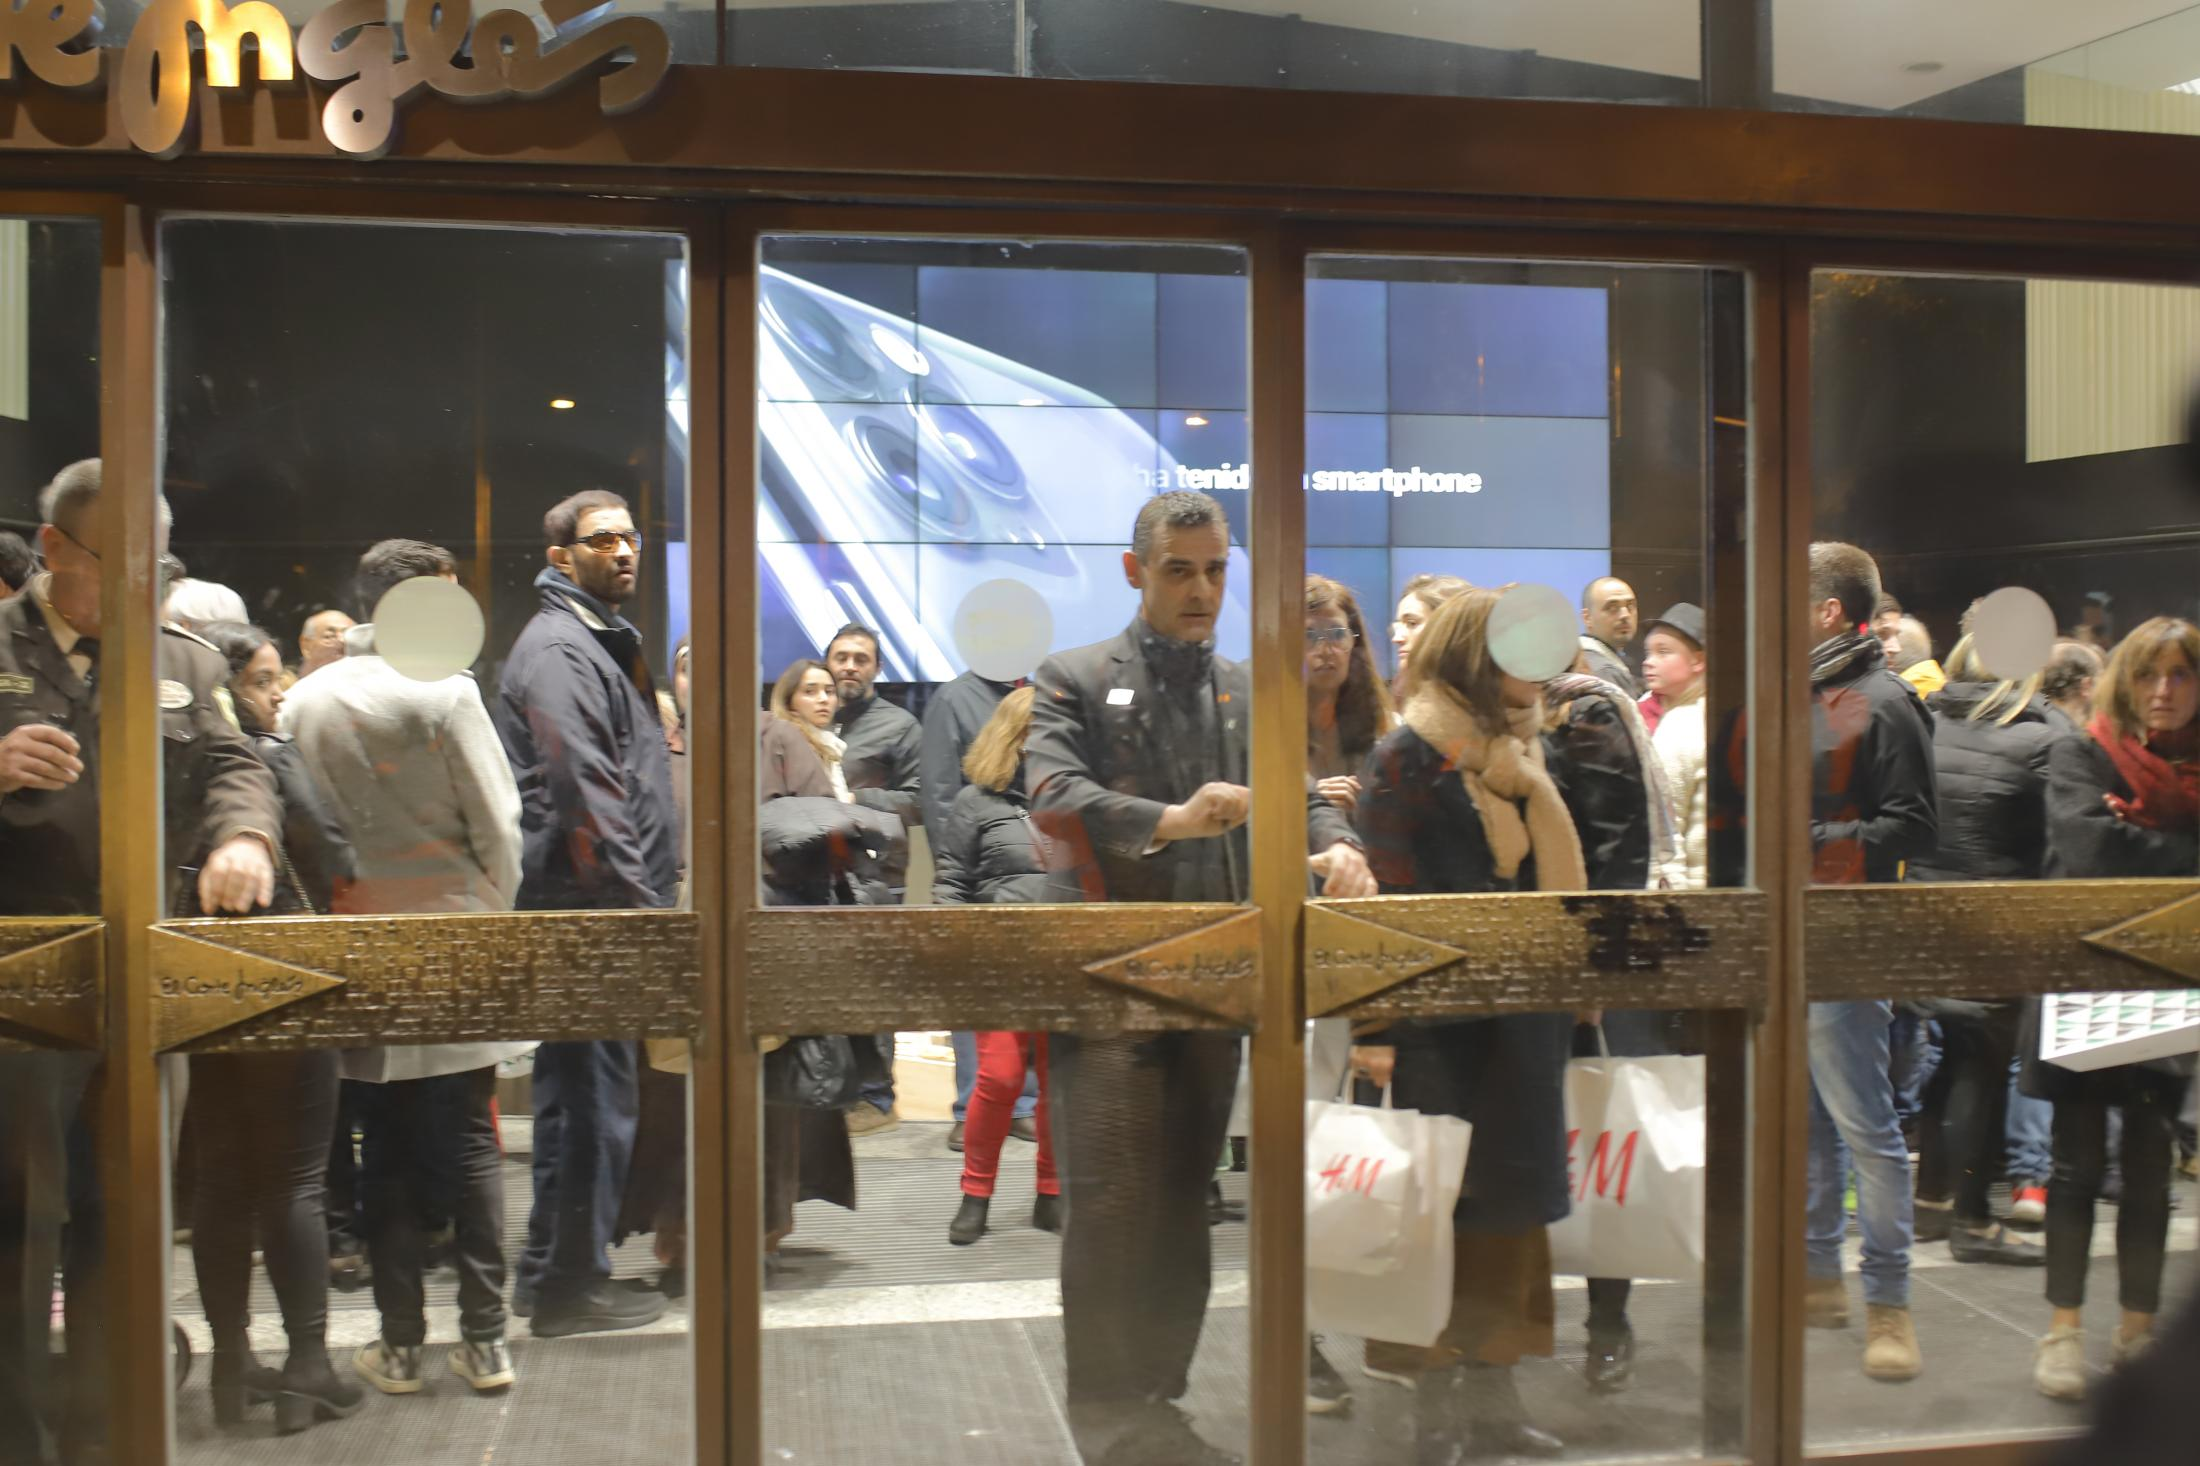 Employees and clients of Les Corte Engles lock themselves inside the building while the protesters advance towards Urquinaona. Hundreds took to the streets for successive nights with anger over the jailed people. Demonstrators torching more than 1,000 trash containers, destroying street furniture and throwing rocks at police. October 2019, Barcelona, Spain.